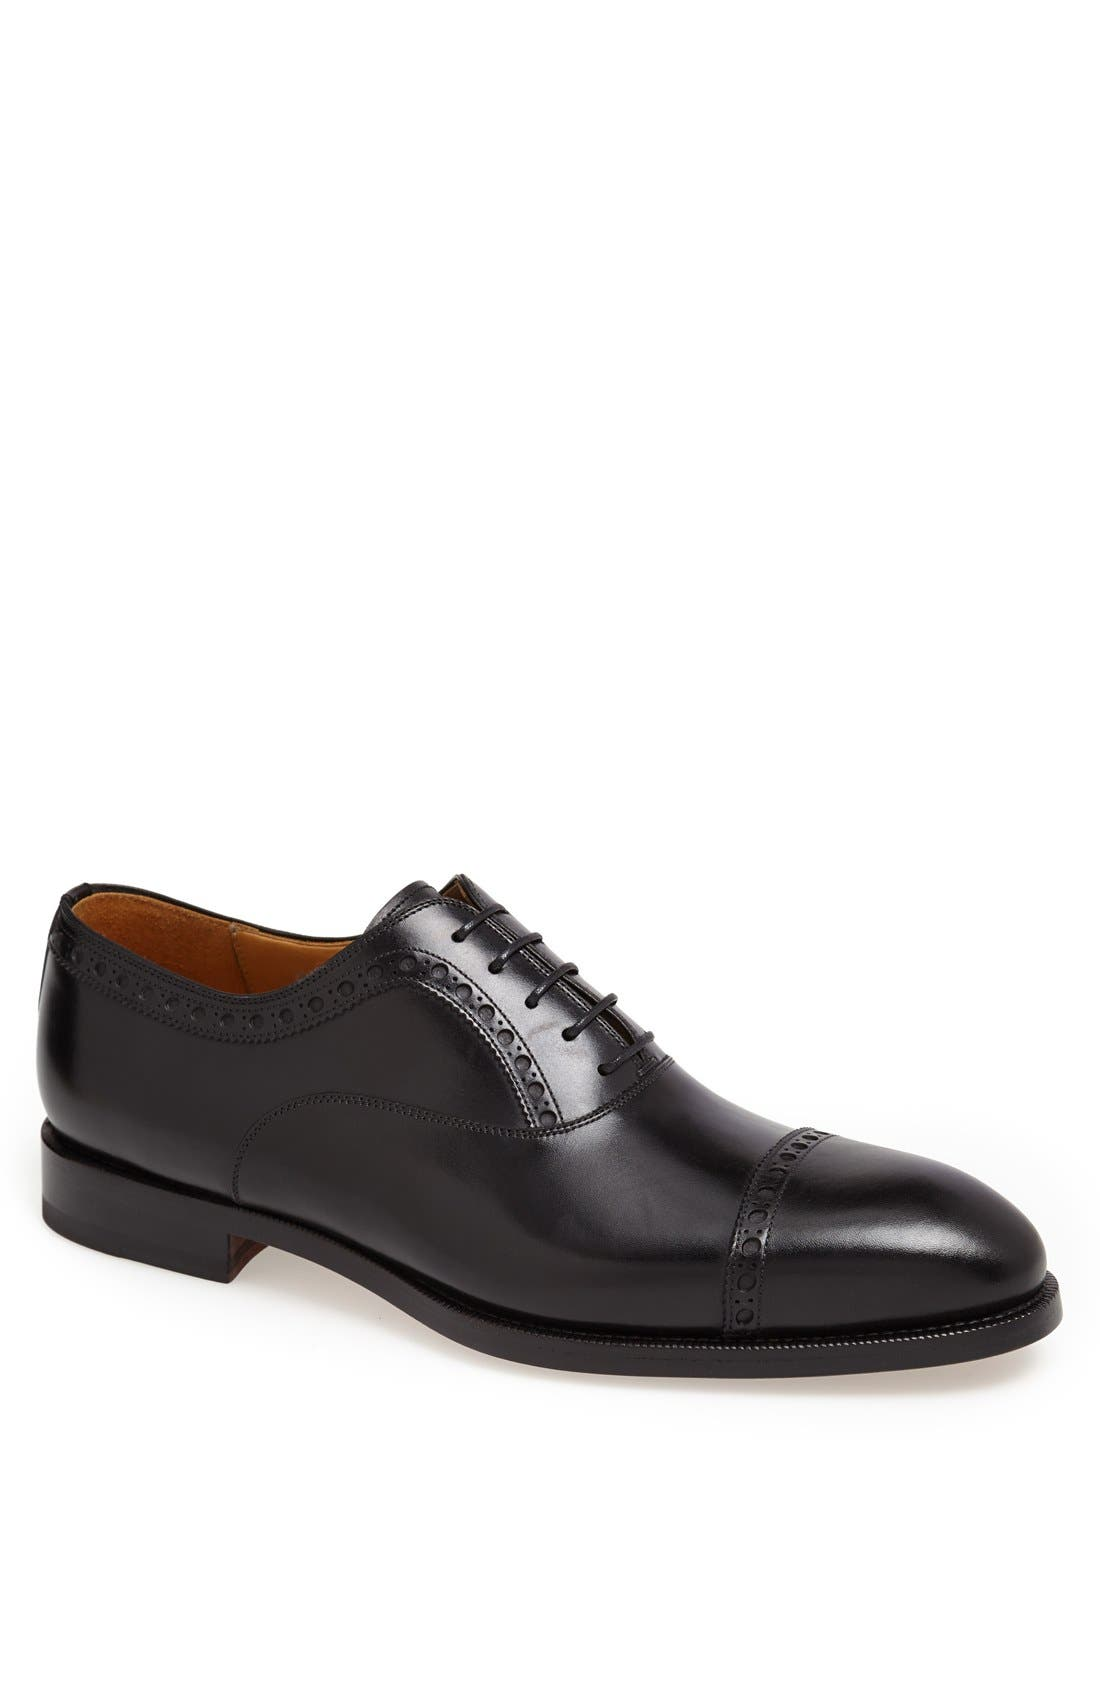 Main Image - Magnanni 'Luca' Cap Toe Oxford (Men) (Online Only)